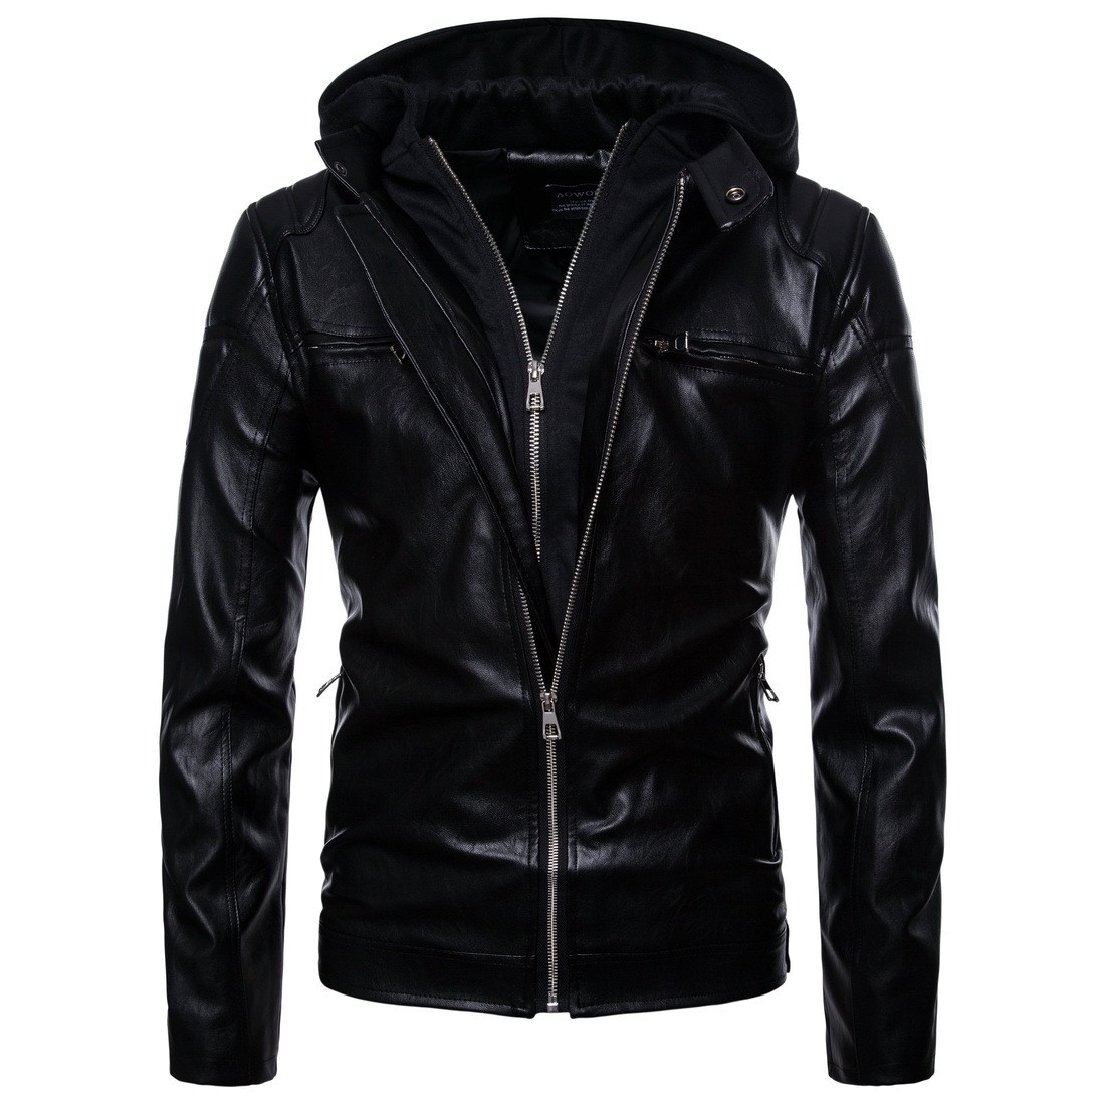 Vska Men Hooded Zip-up PU Rock Style Outwear Punk Moto Biker Jacket